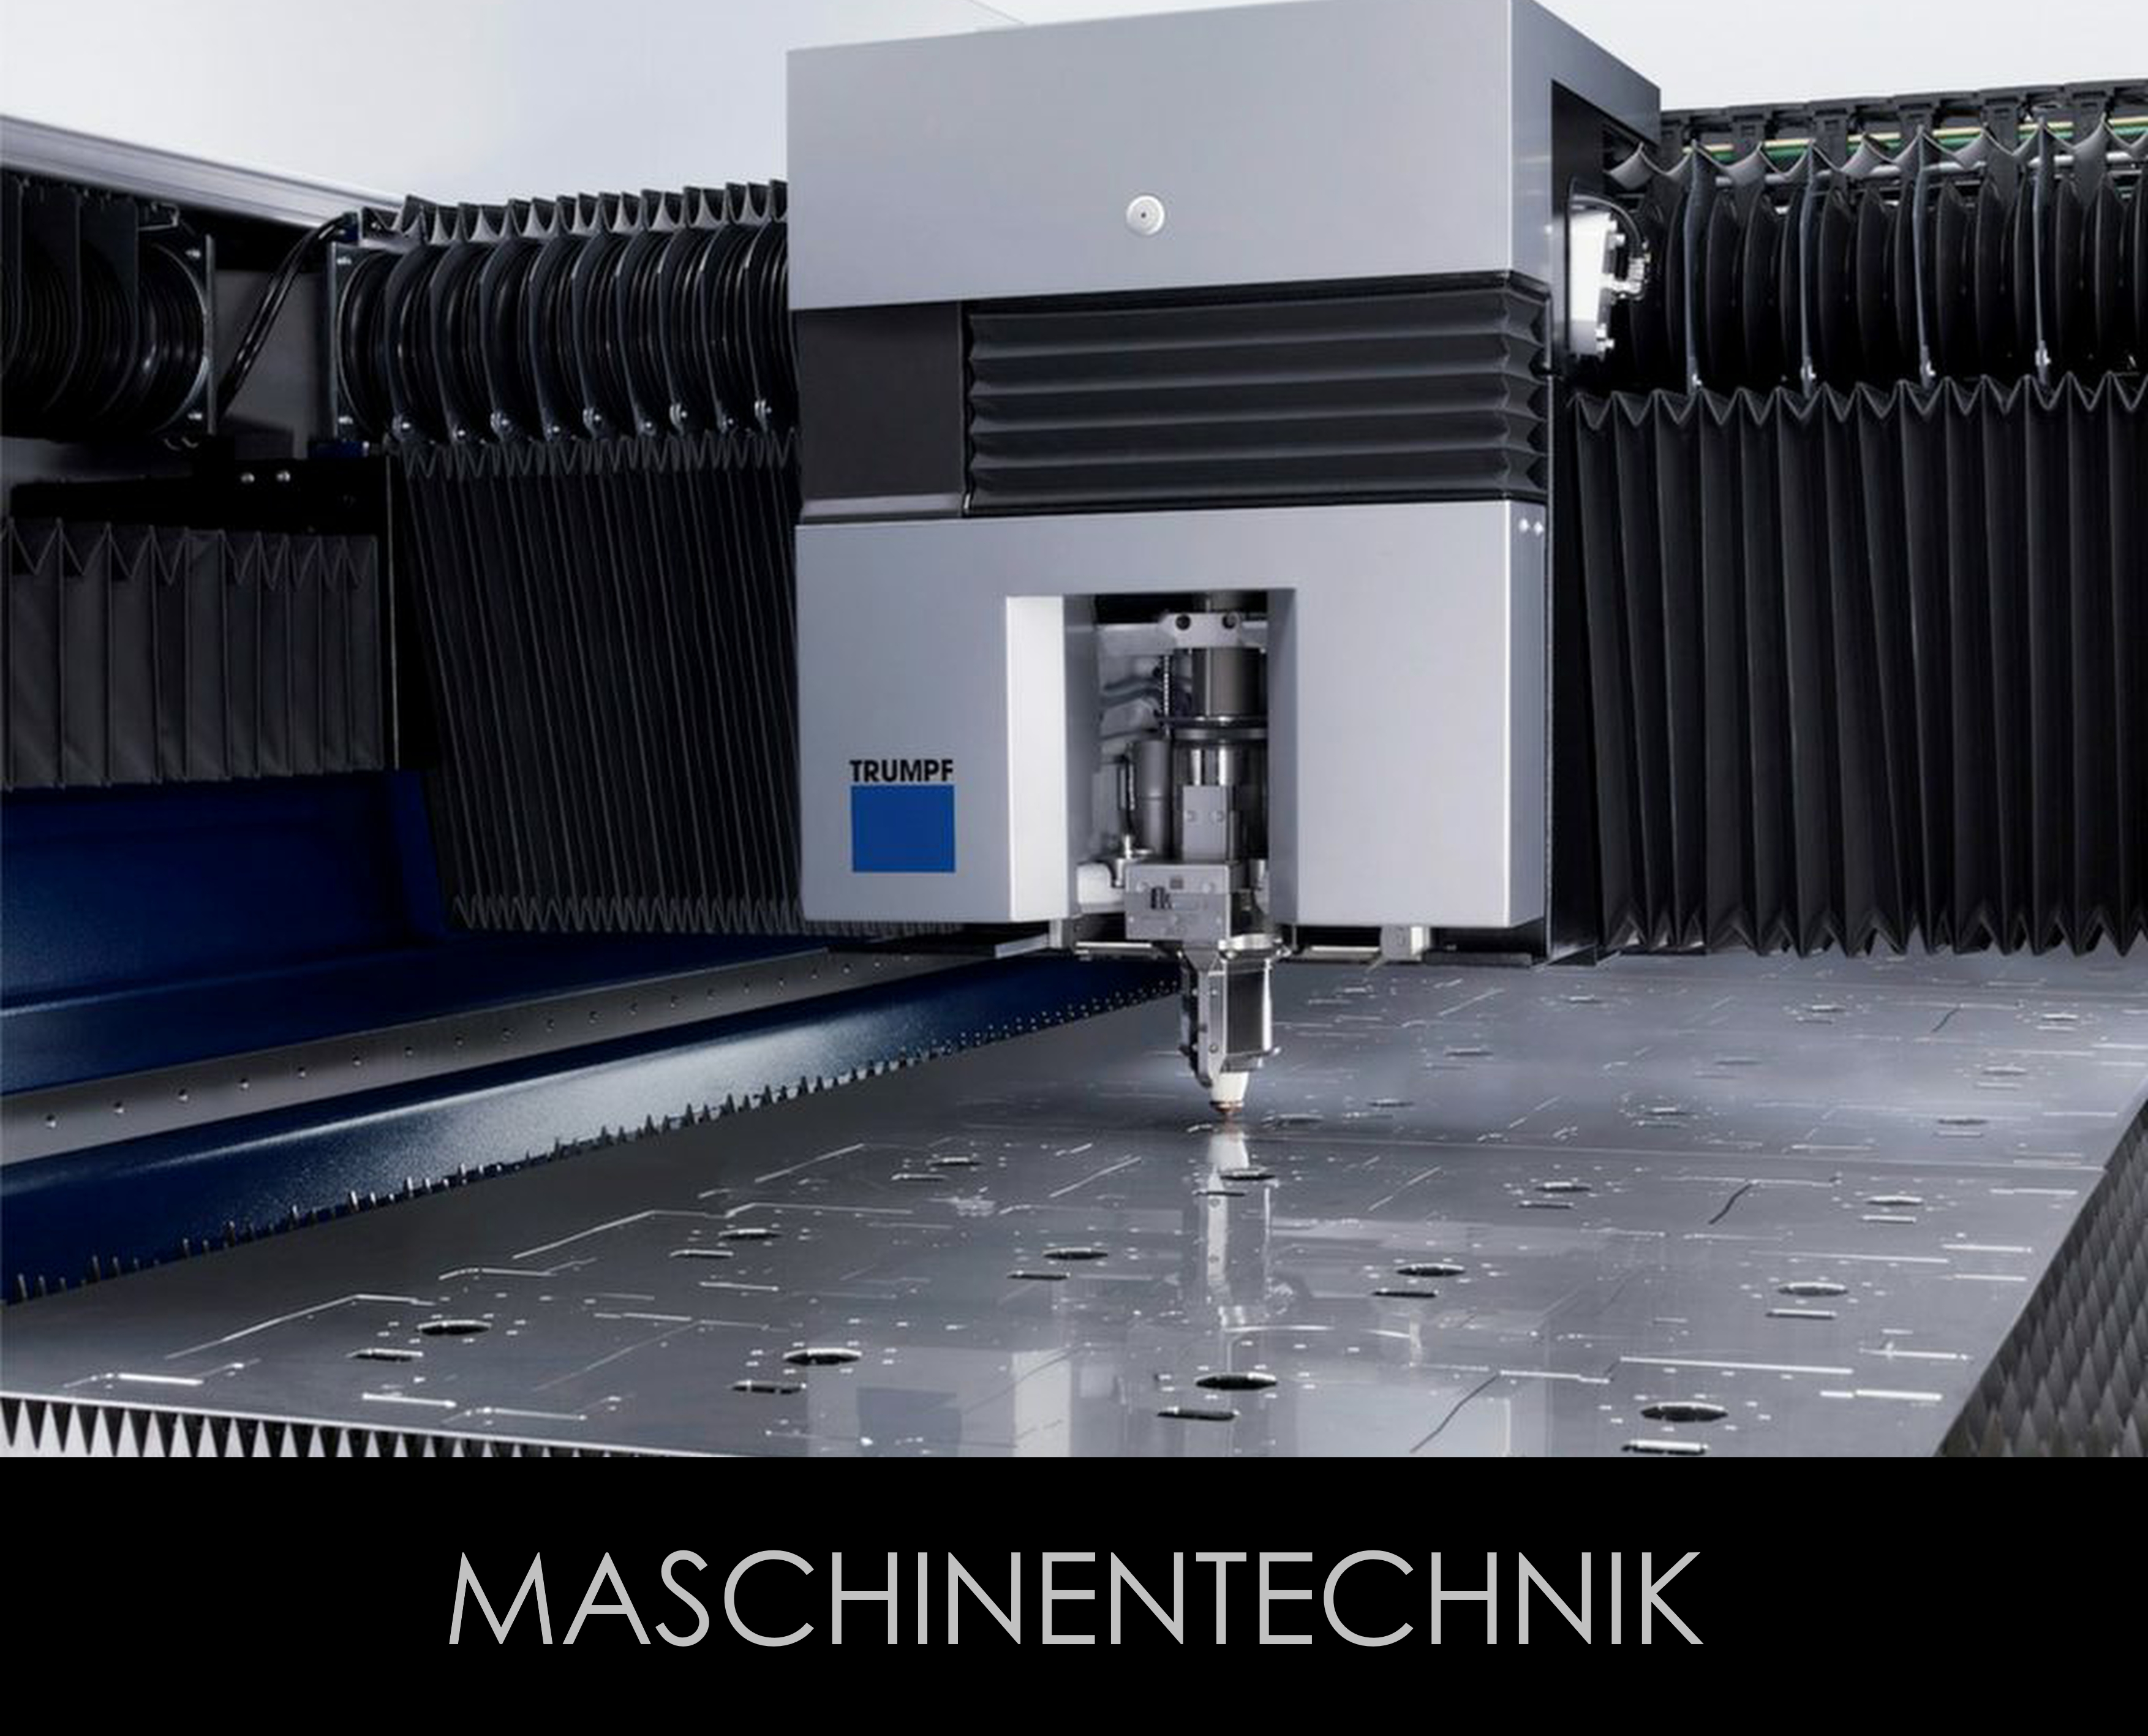 Techno Co Lasermaschinen Technik - Lasermaschine